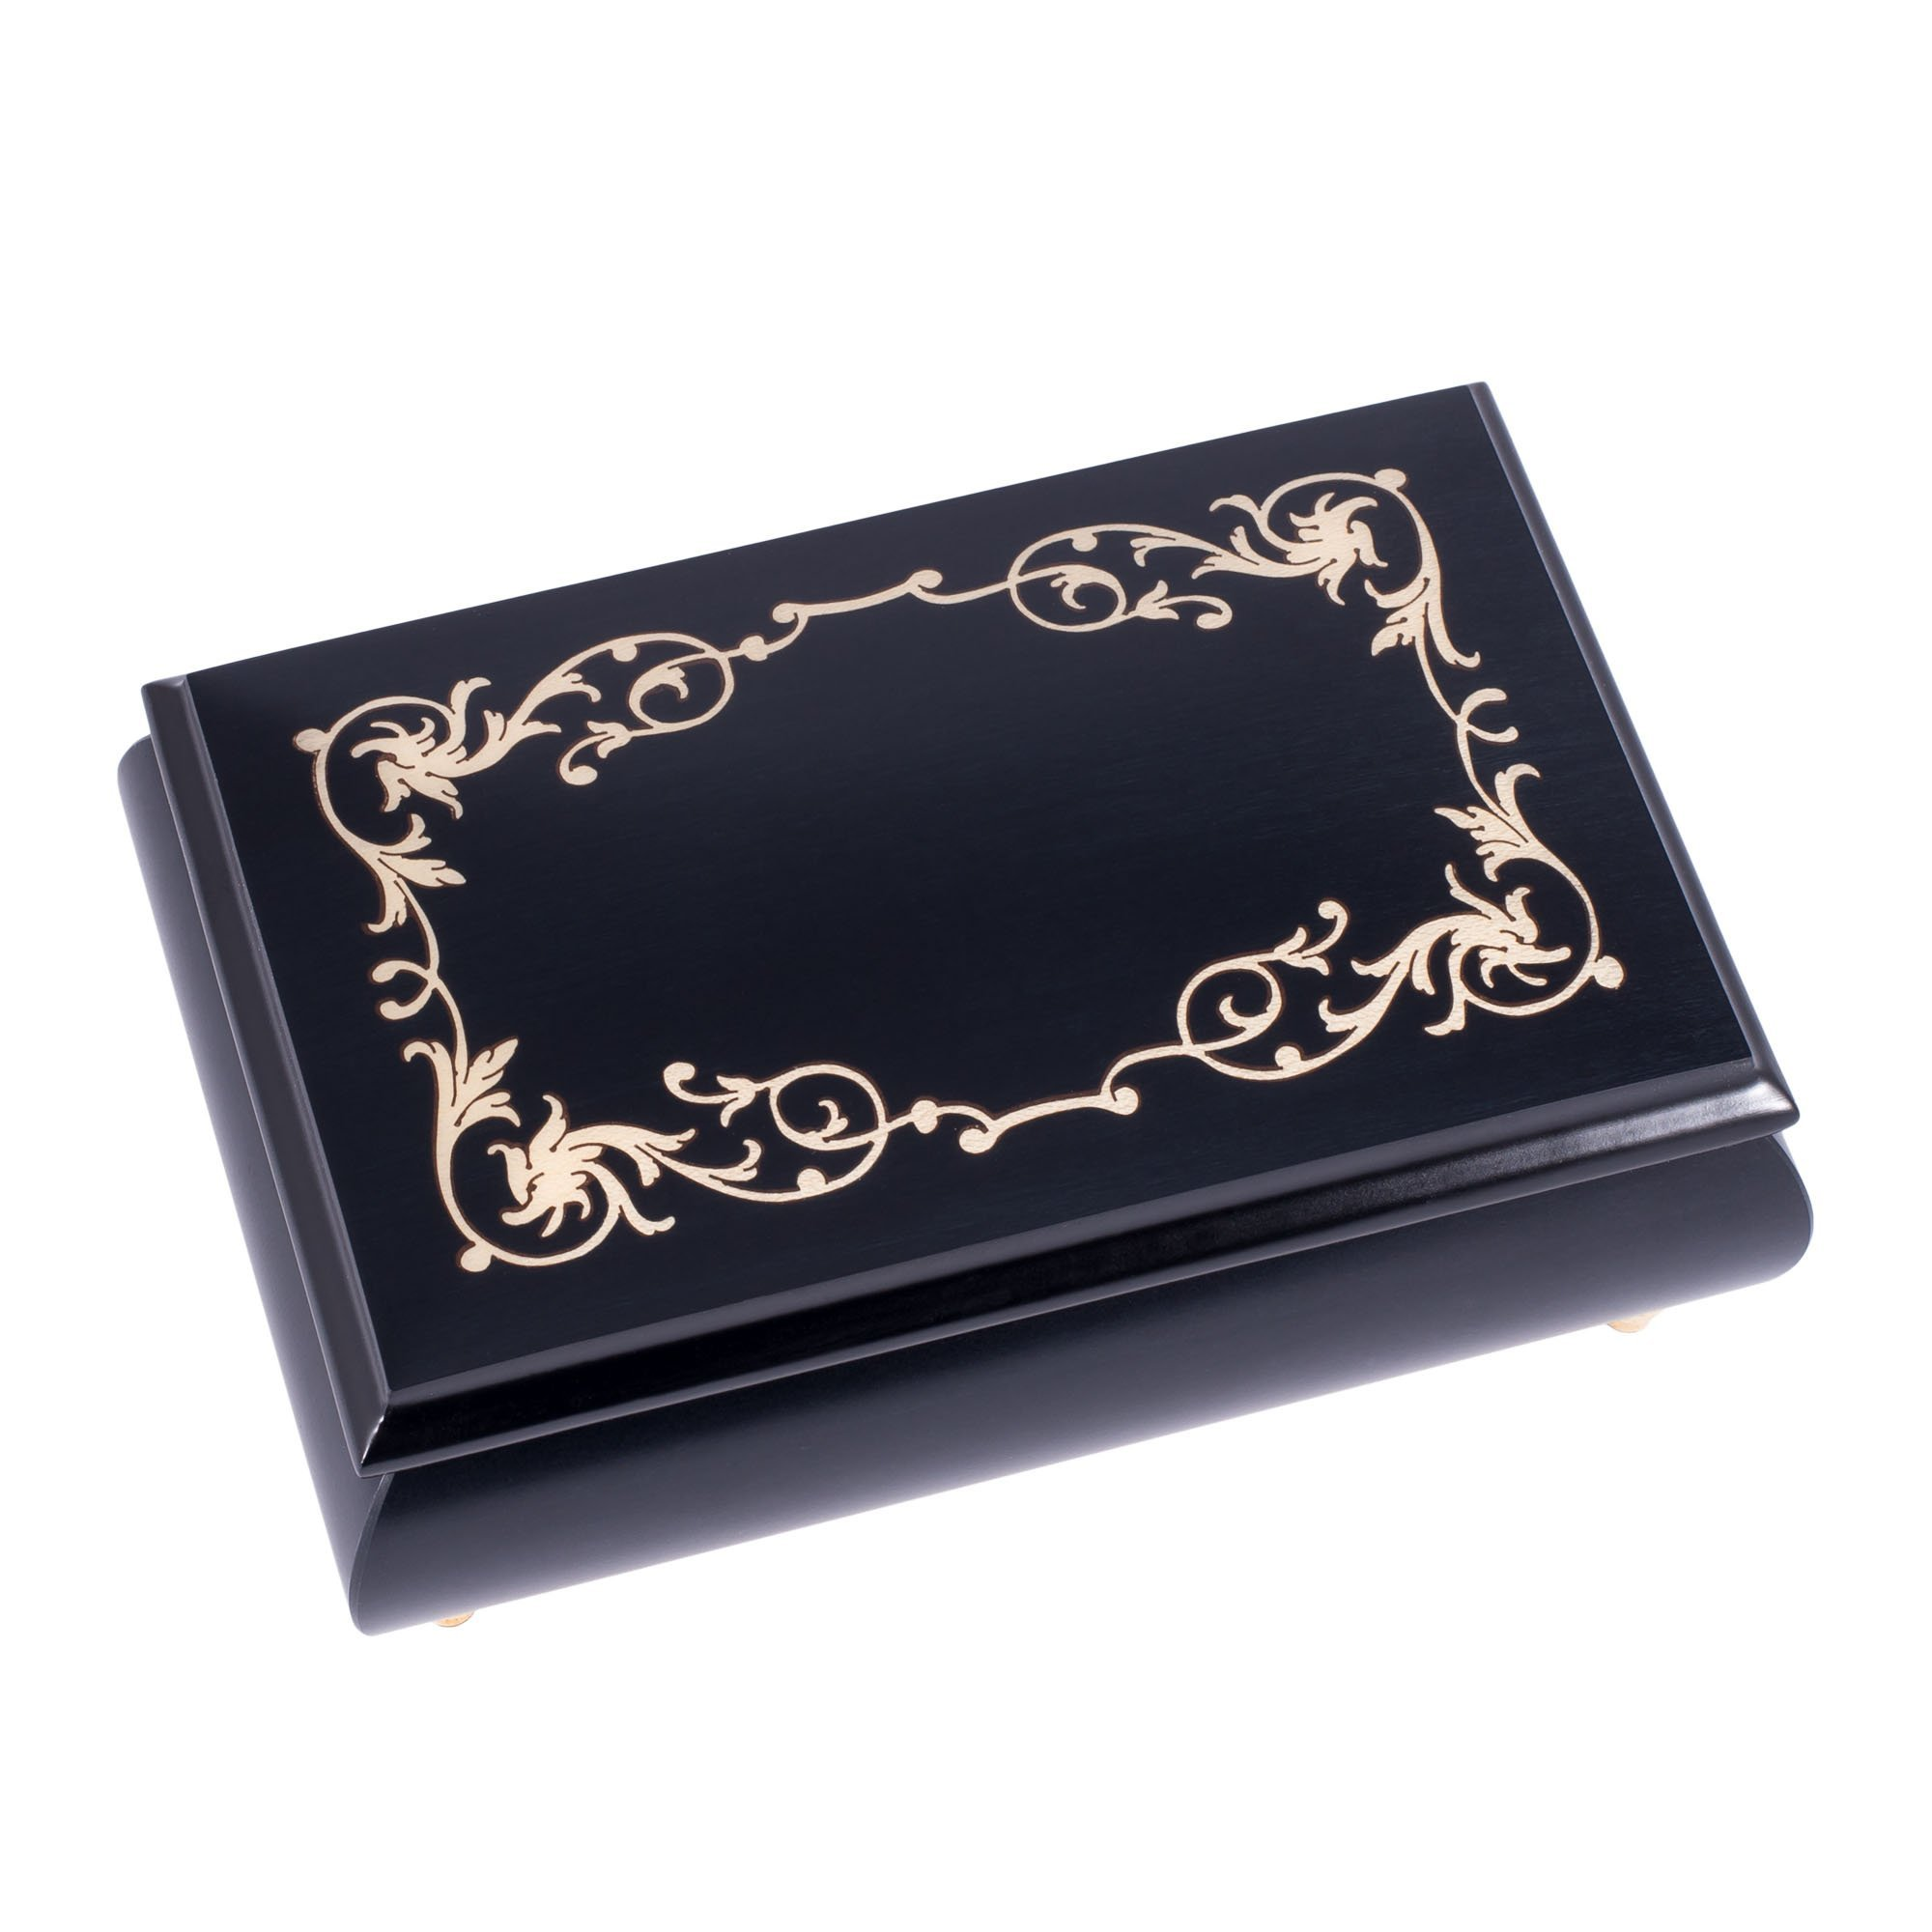 Pearl Filigree Italian Handmade Inlaid Black Hardwood Musical Jewelry Box - Plays Tune Clair de Lune